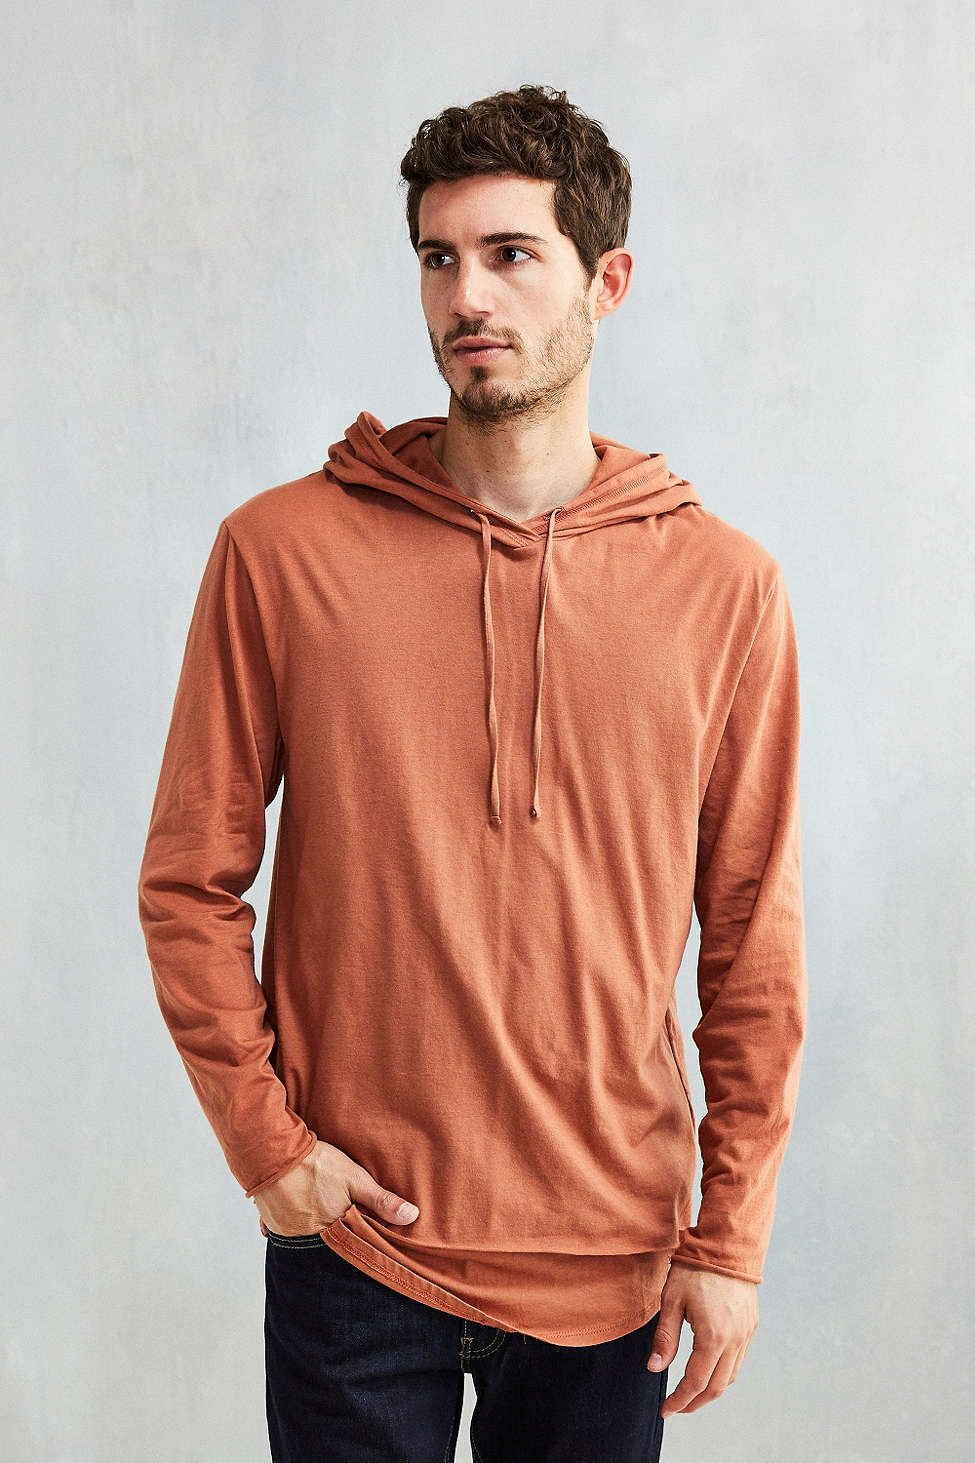 Feathers Double Layer Long-Sleeve Hooded Tee | SPR BRK 2017 GUYS ...